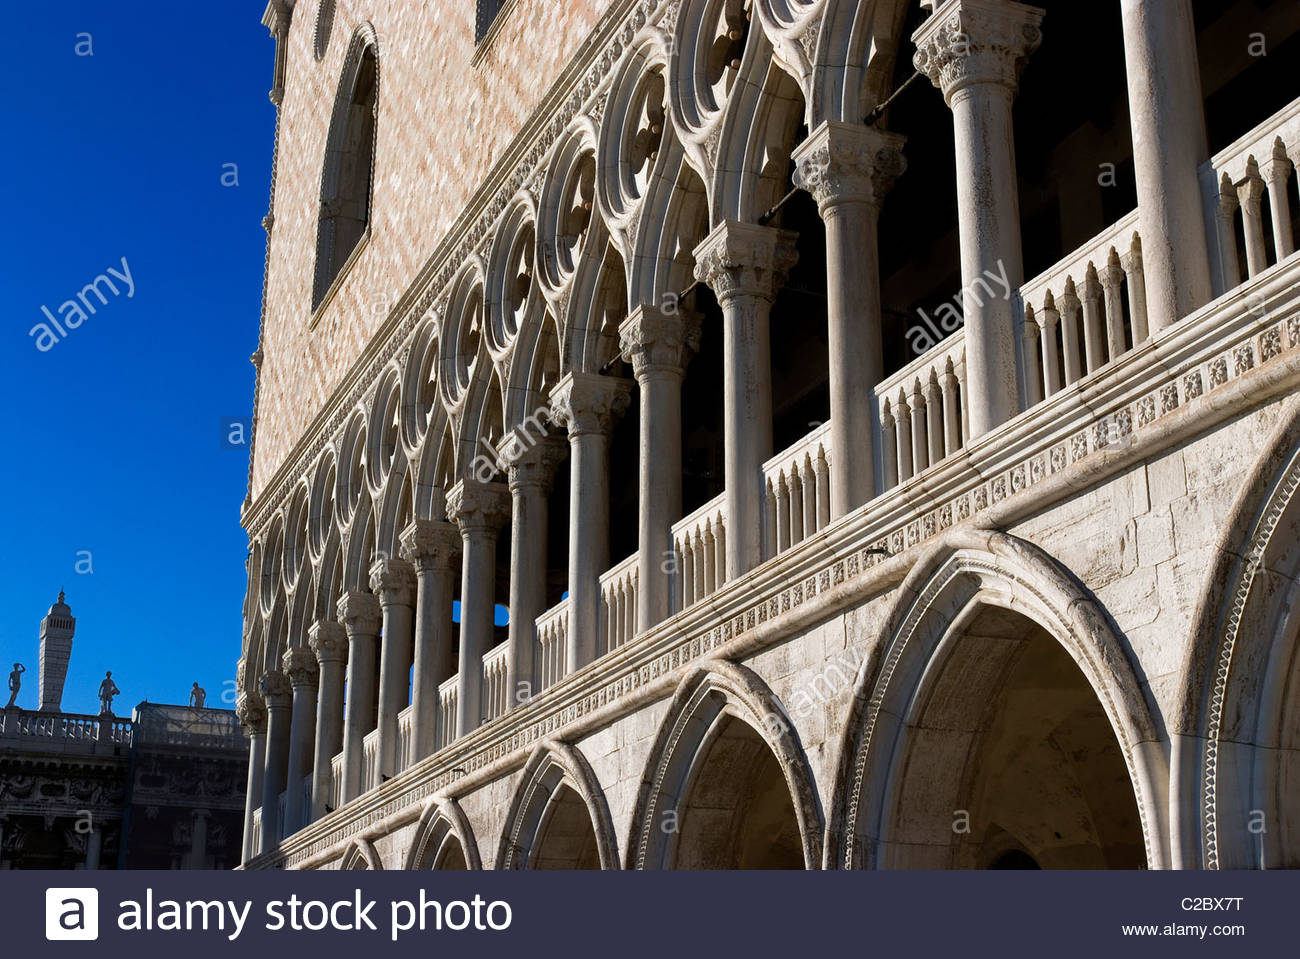 Ducal Palace in the Palazzo Ducale in Venice. - Stock Image